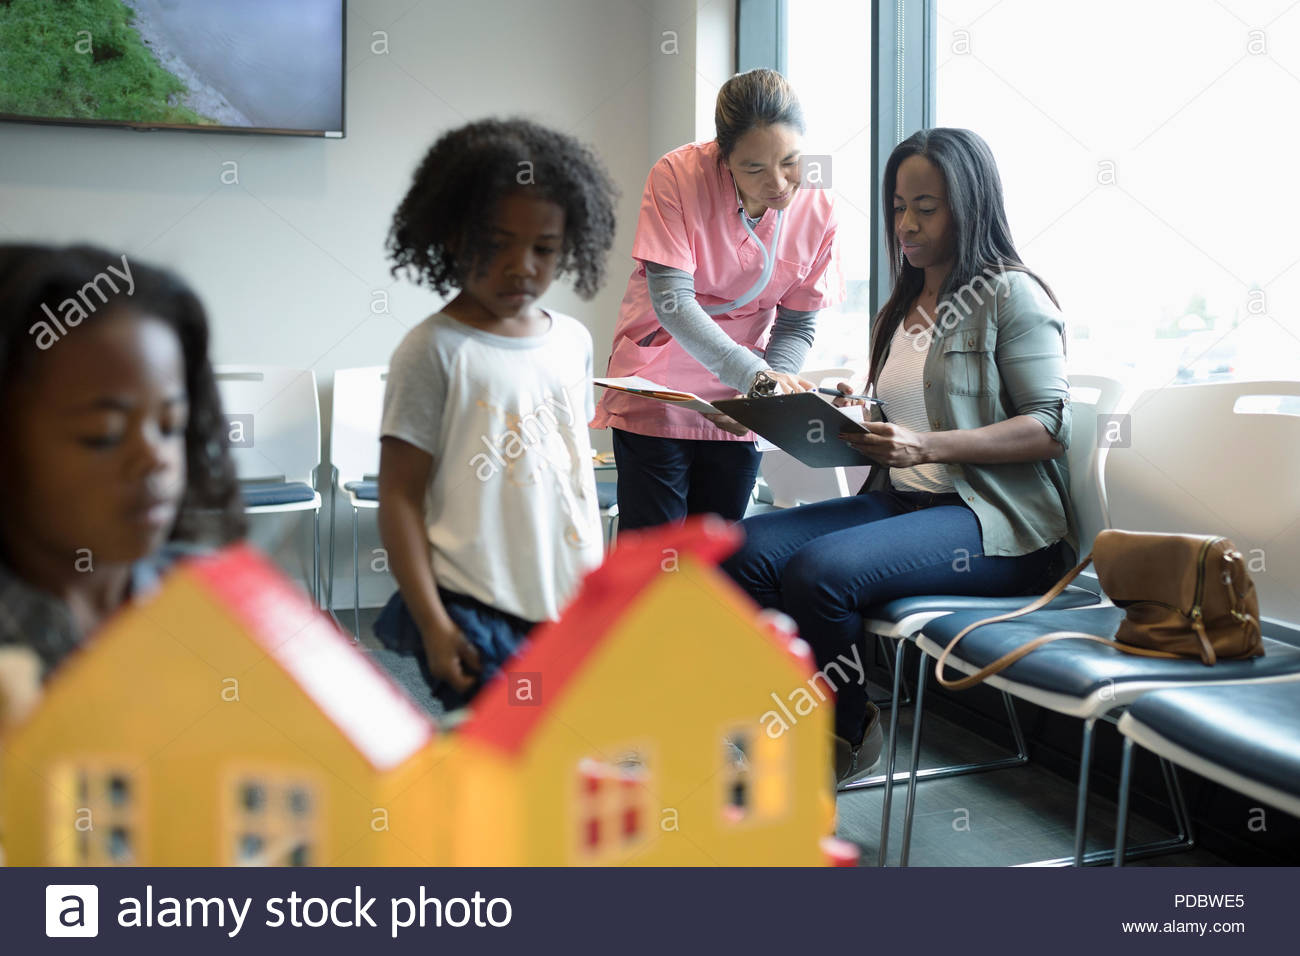 Nurse helping mother patient fill out paperwork in clinic waiting room - Stock Image